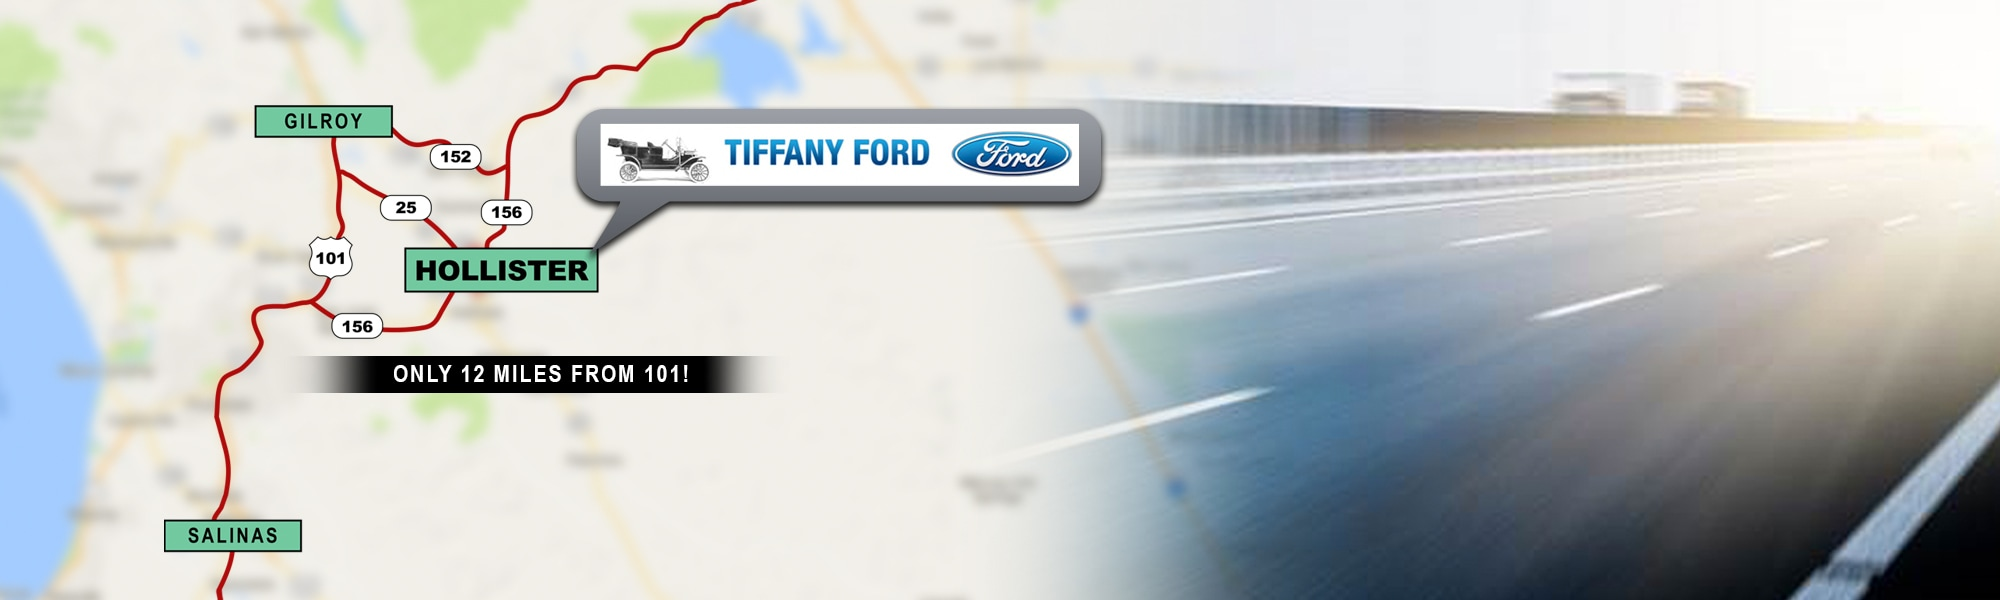 Tiffany Ford | Ford Dealership in Hollister CA